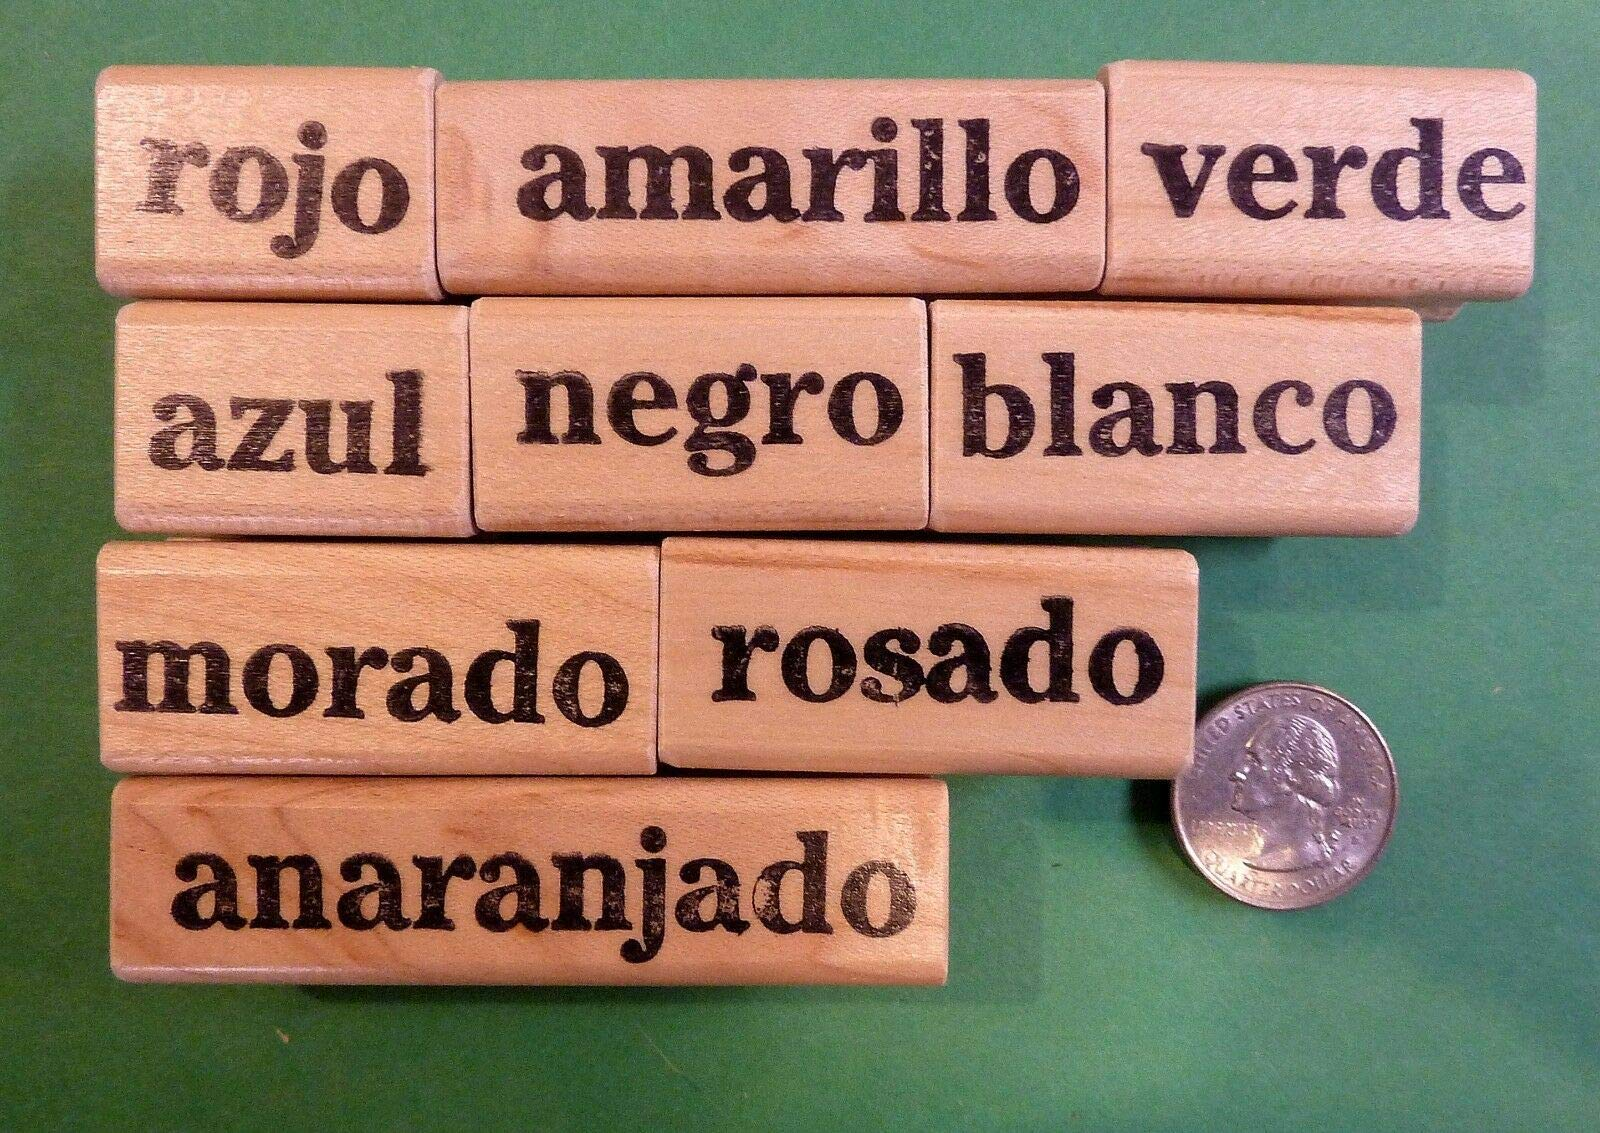 Spanish Teacher's Colors Rubber Stamp Set of 9, Wood Mounted - Rubber Stamp Wood Carving Blocks by Wooden Stamps